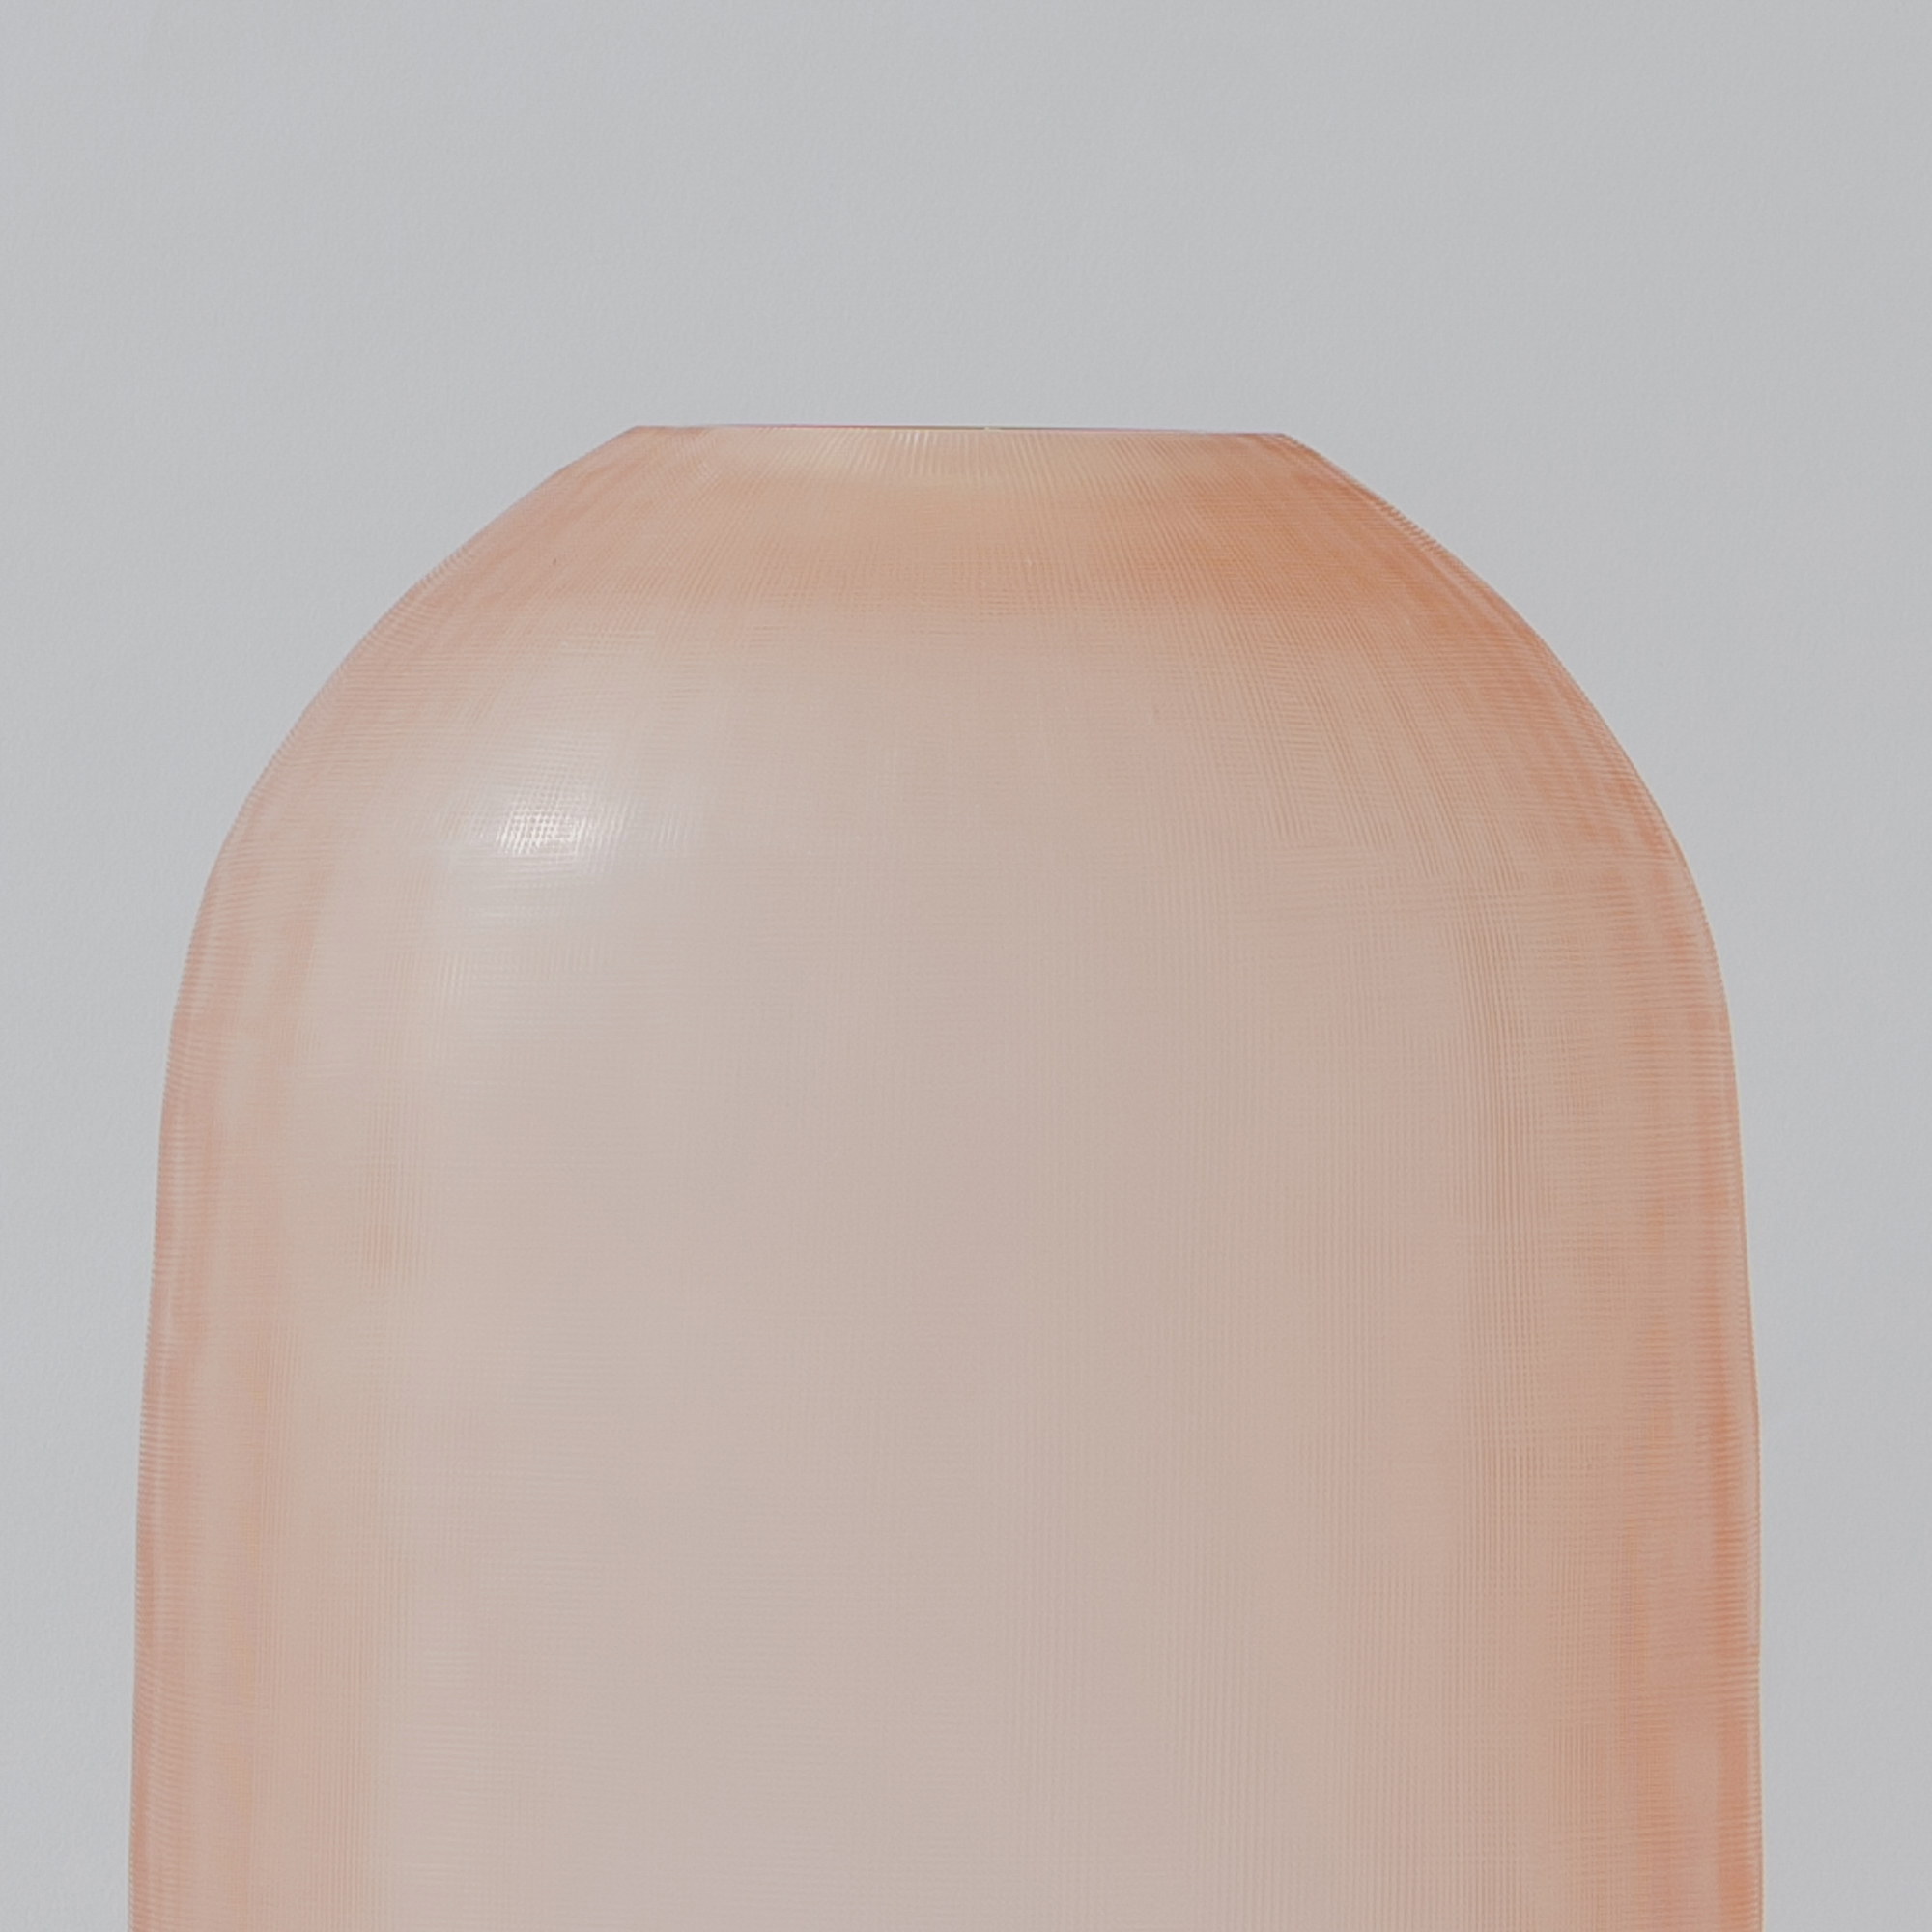 Dunes Glass Vase - Rose Gold